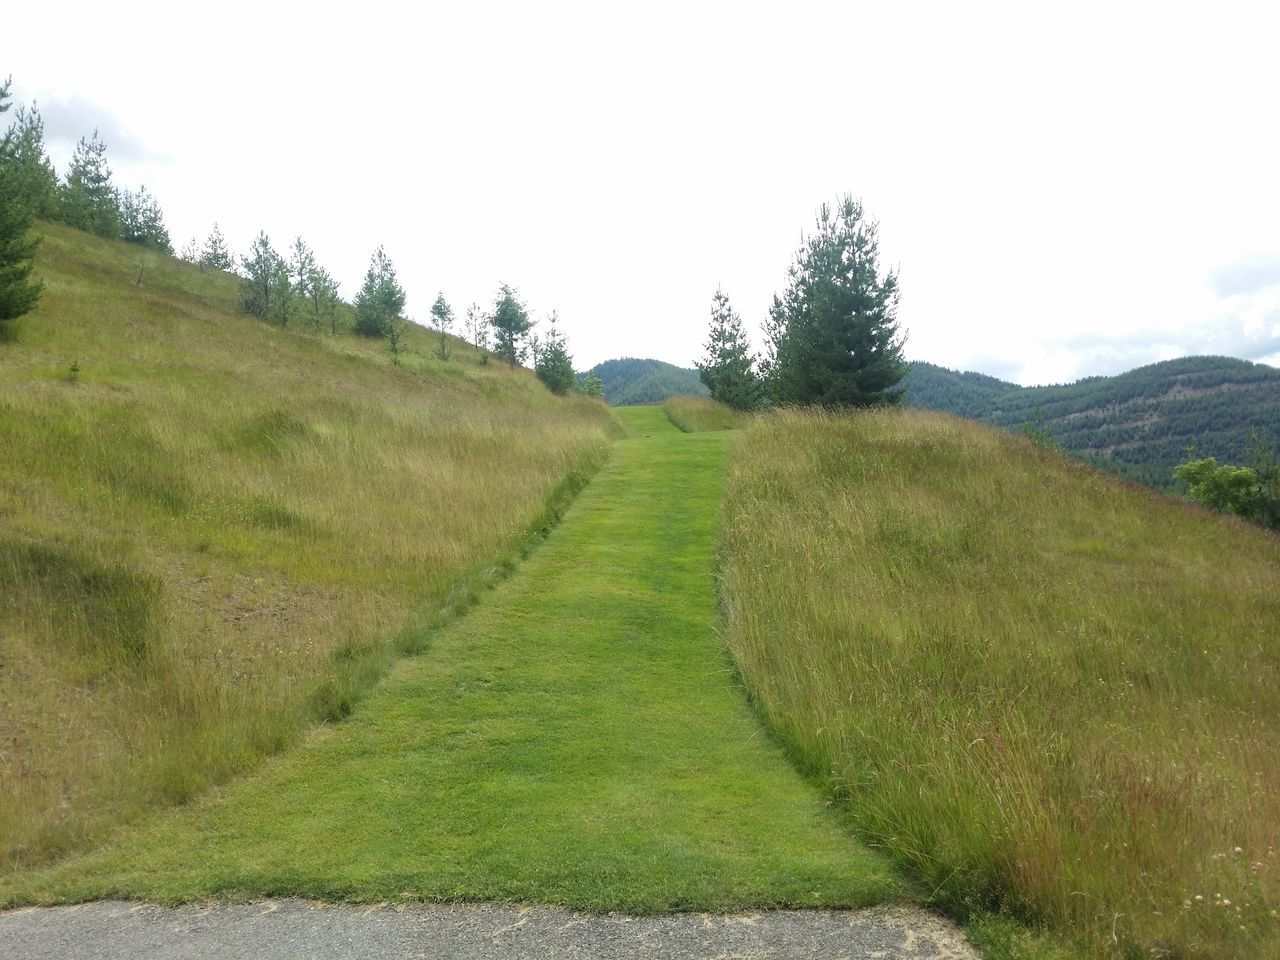 Pathway To Heaven Path To Nowhere Pacific Northwest  Grass Photography Grass And Sky Grassy Hillside Grass Country Side Grassy Path Grassy Hill Meadows And Fields Meadow Walk Meadowsinthemountains Contrasting Landscape Pathway Of Peace Contrast Takeover